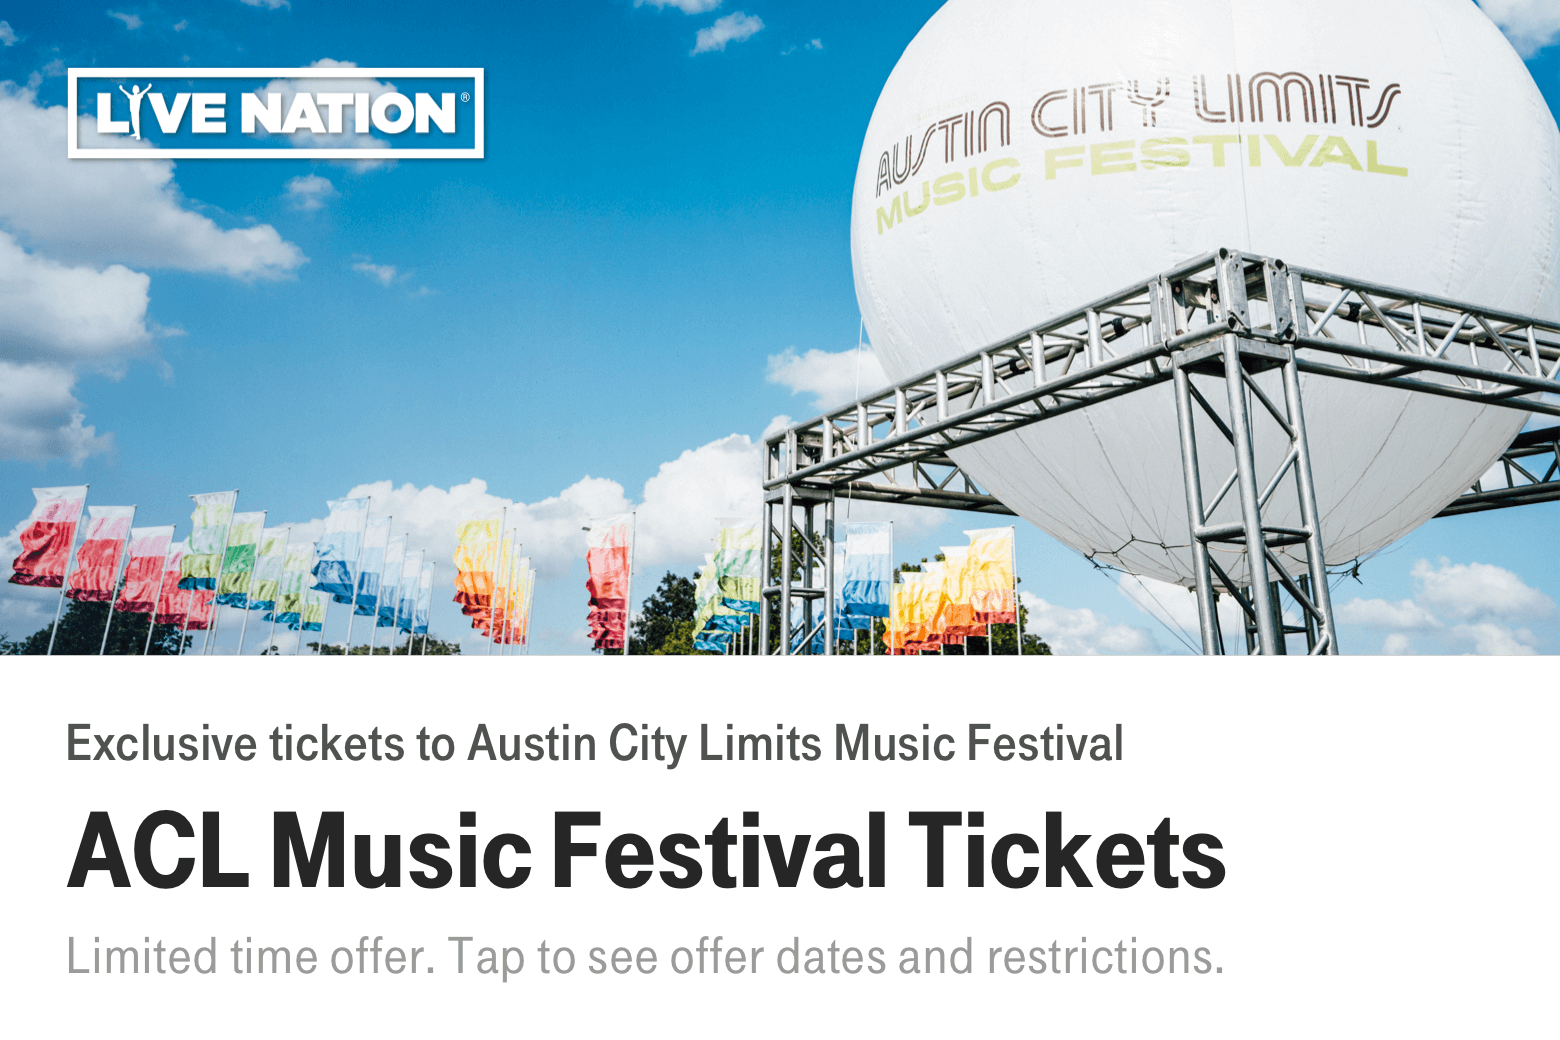 Live Nation. ACL Music Festival Tickets. Exclusive tickets to Austin City Limits Music Festival. Limited time offer. Tap to see offer dates and restrictions.